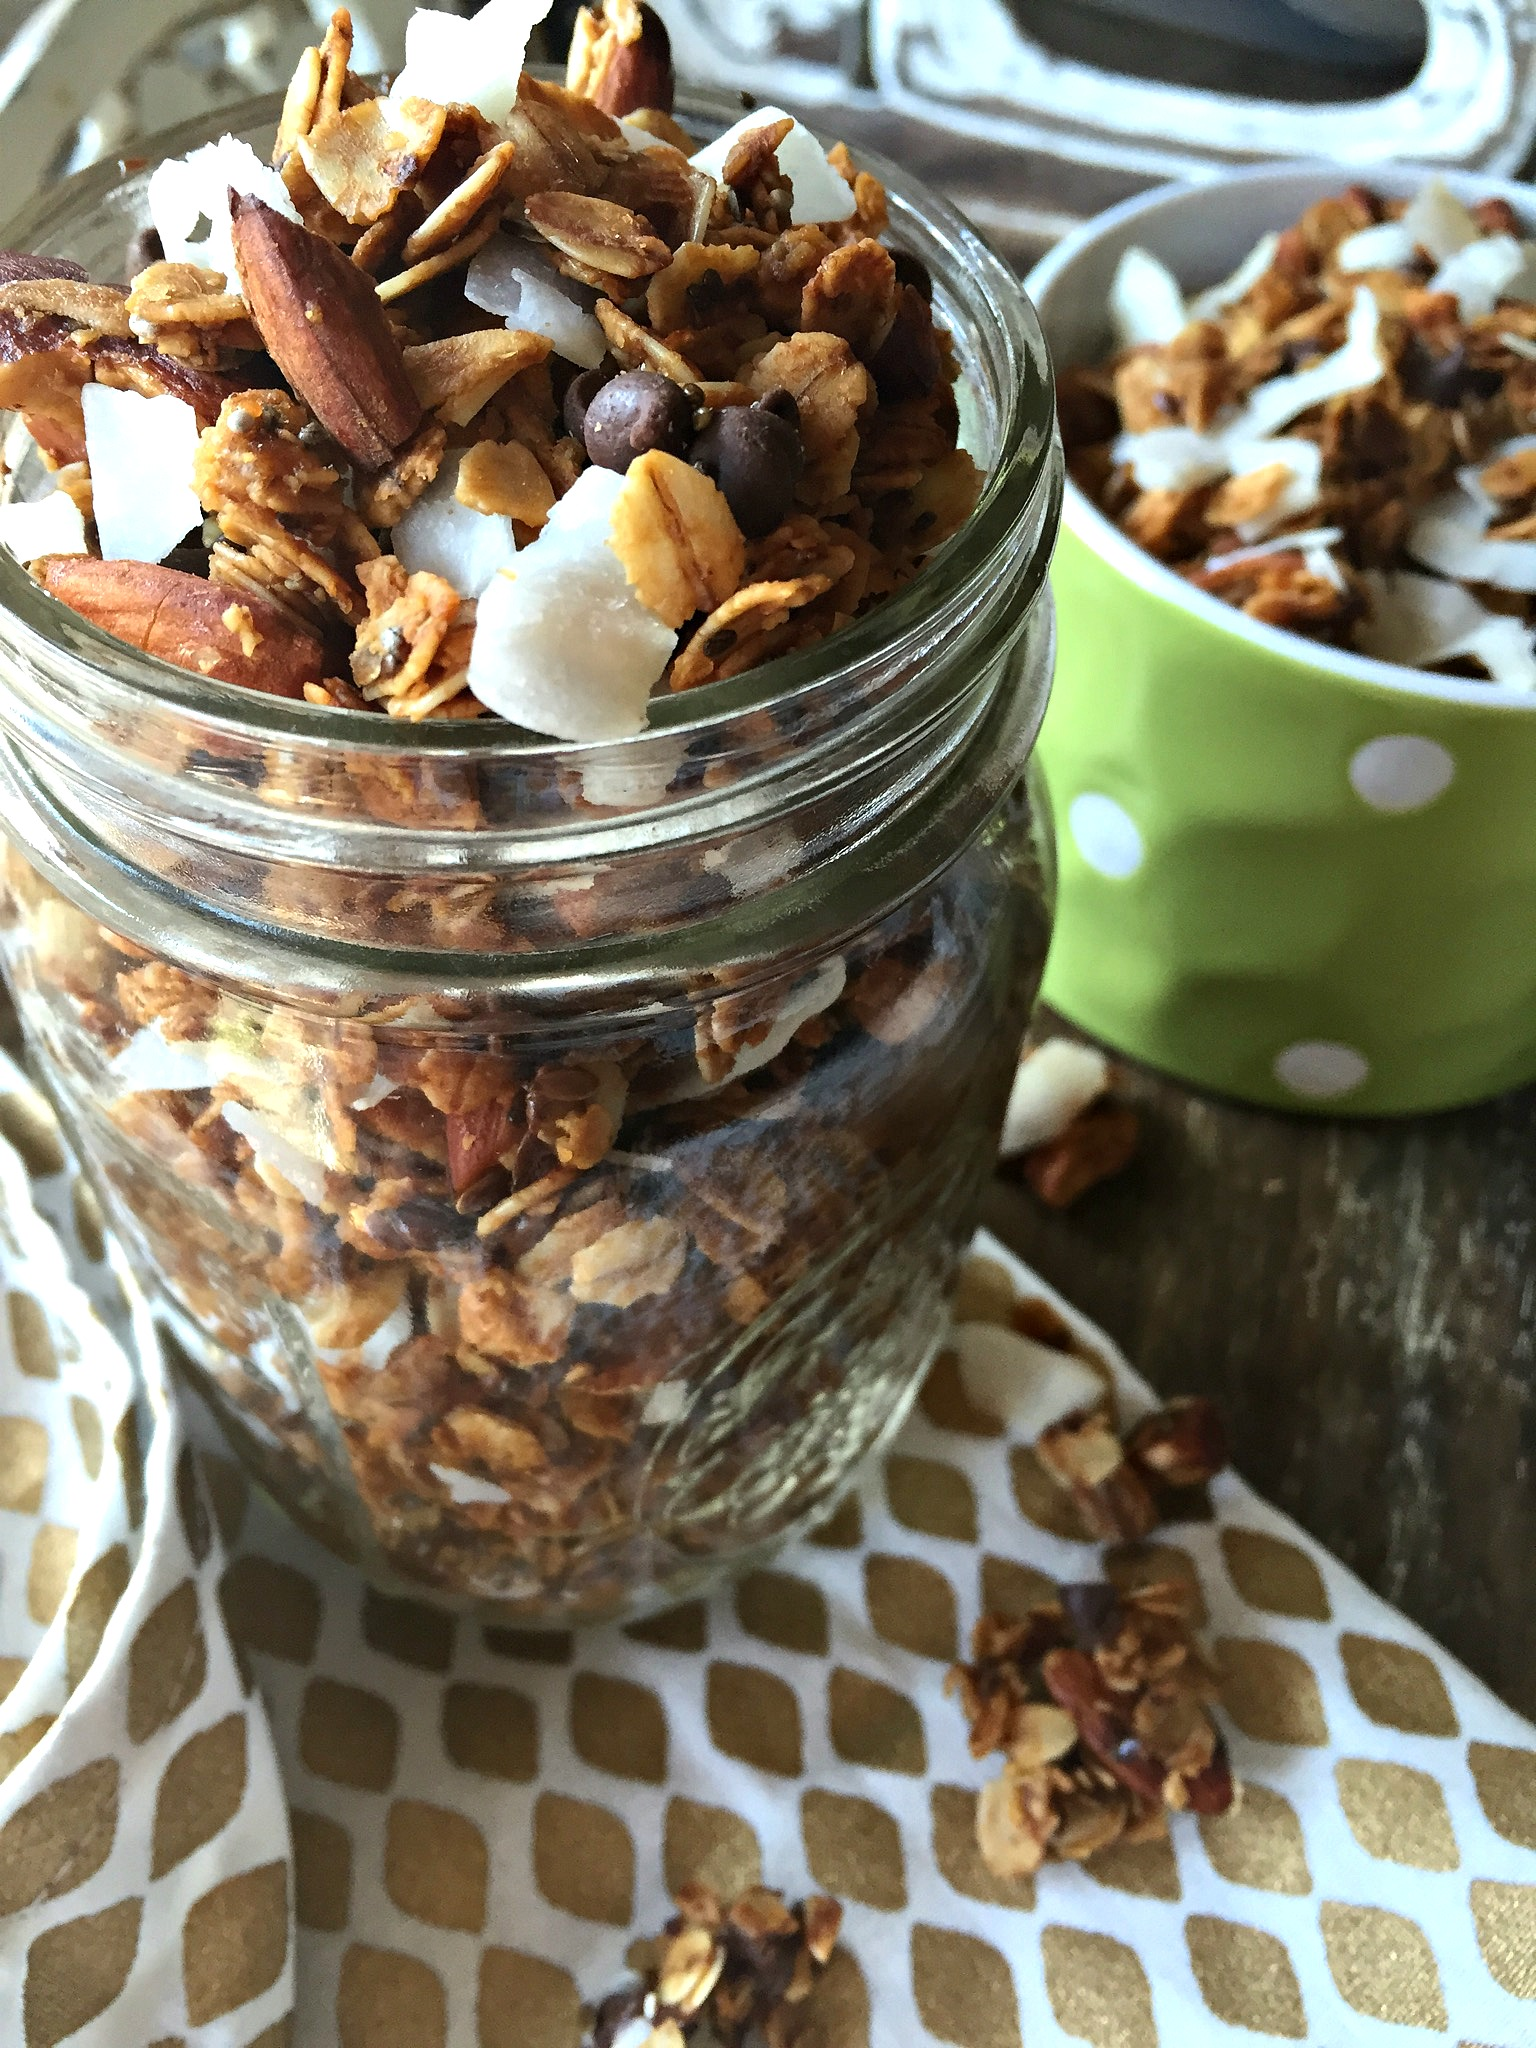 Honey-Roasted Almond, Coconut and Dark Chocolate Granola